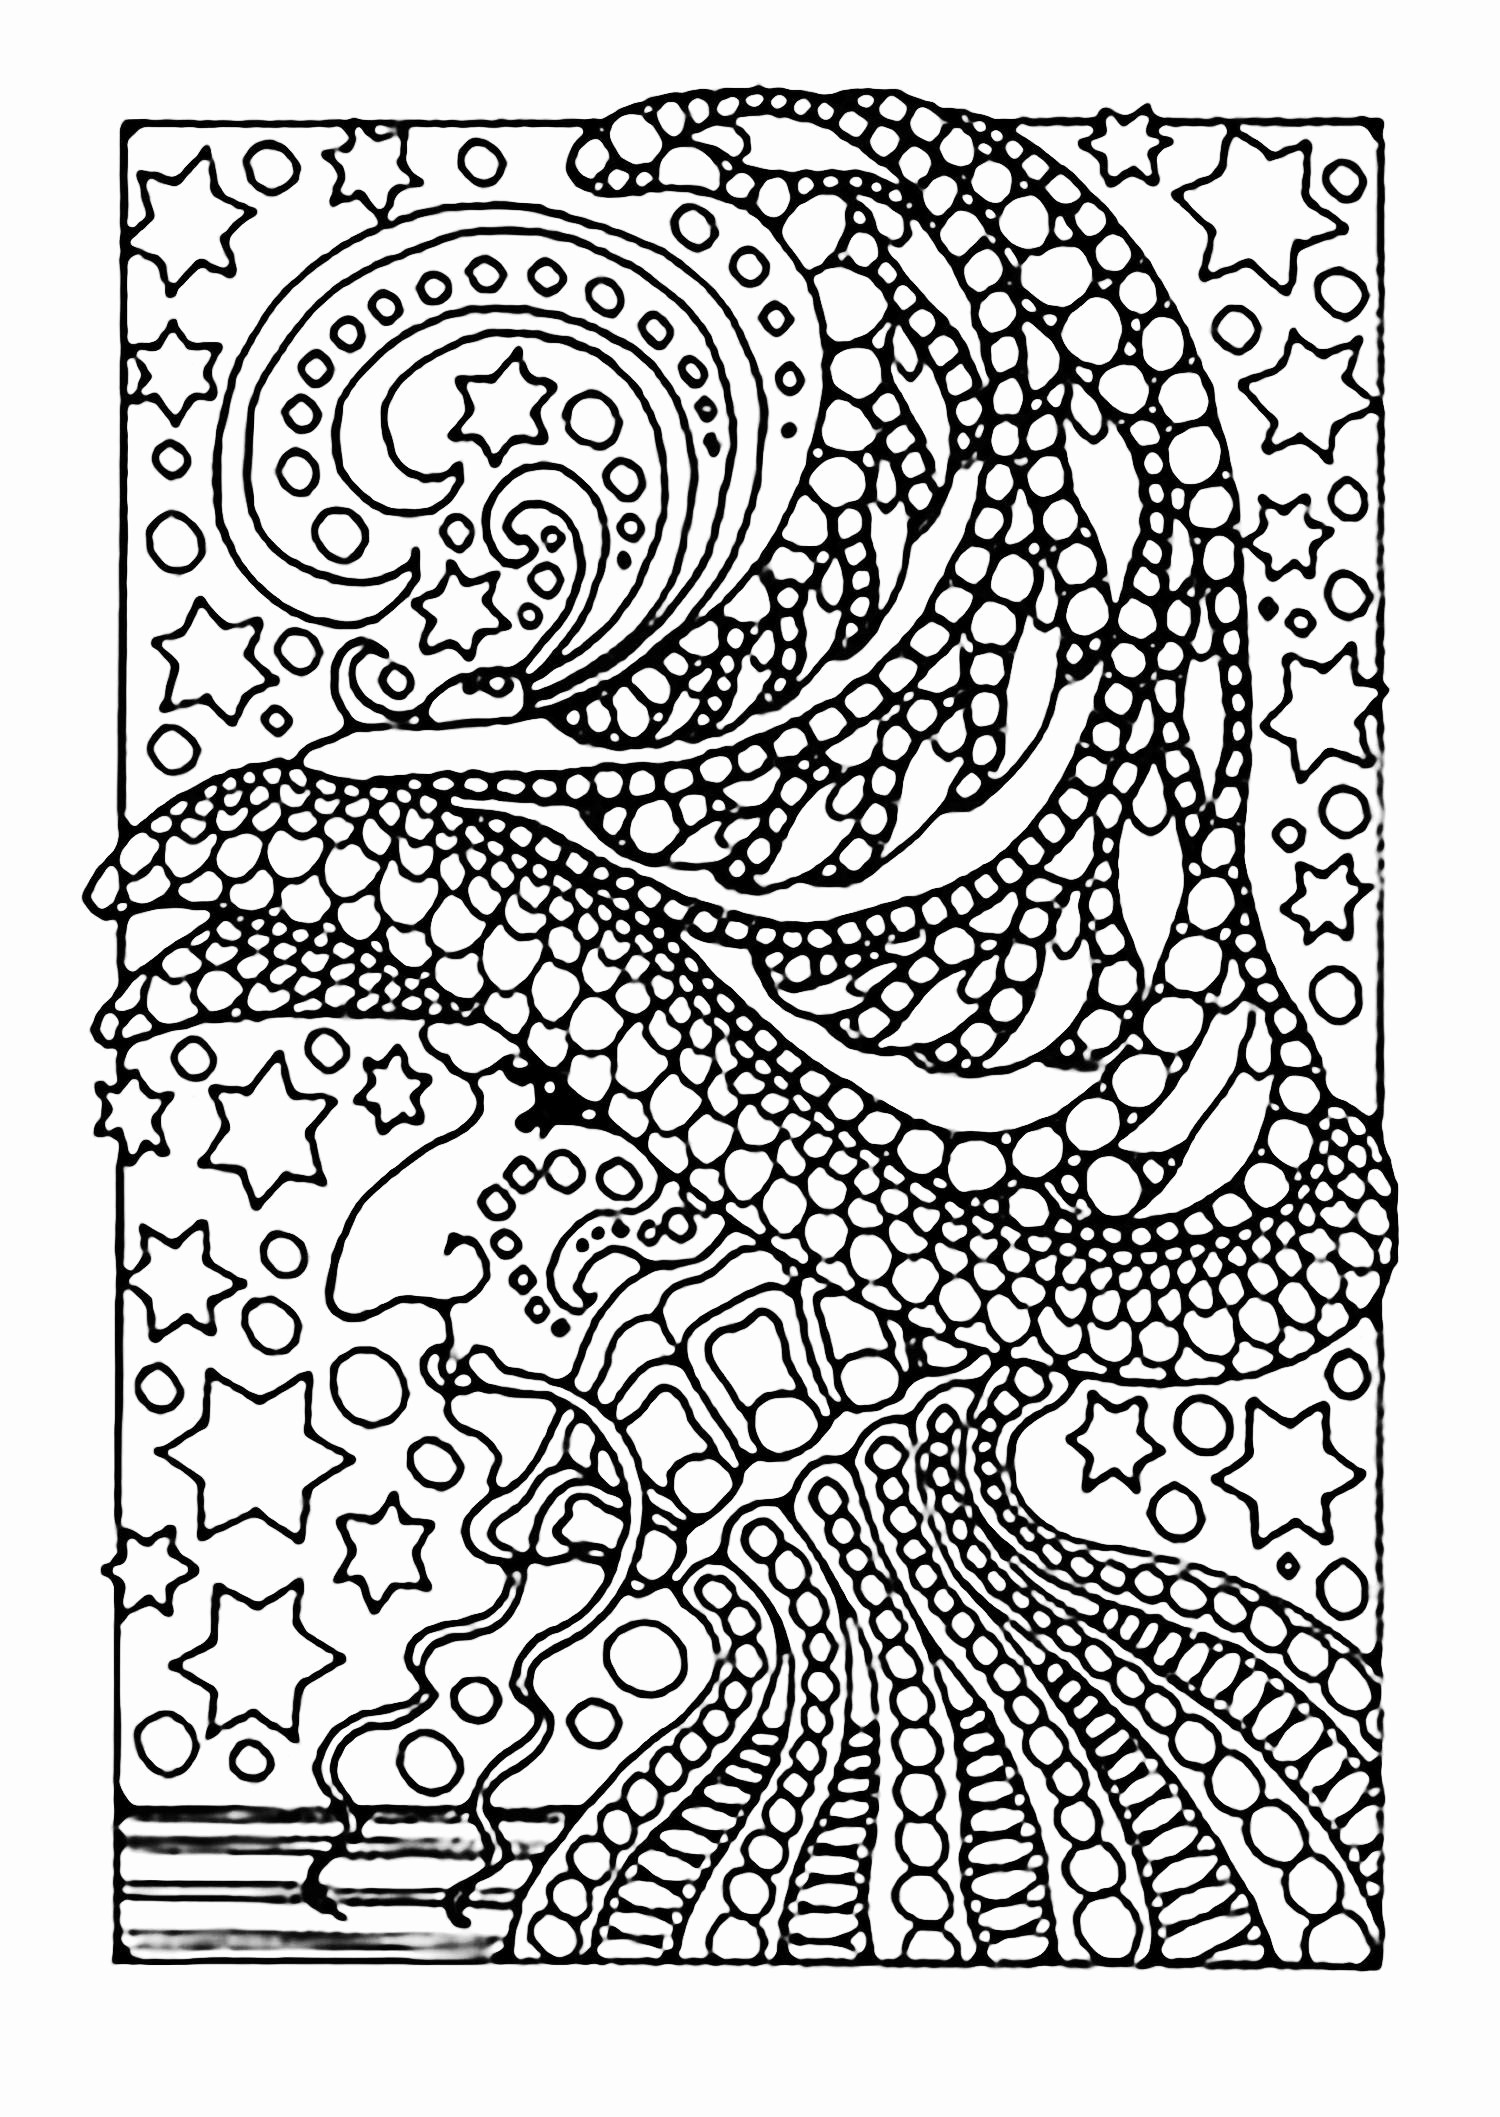 Coloring Pages for Teenagers Graffiti  Printable 2k - To print for your project